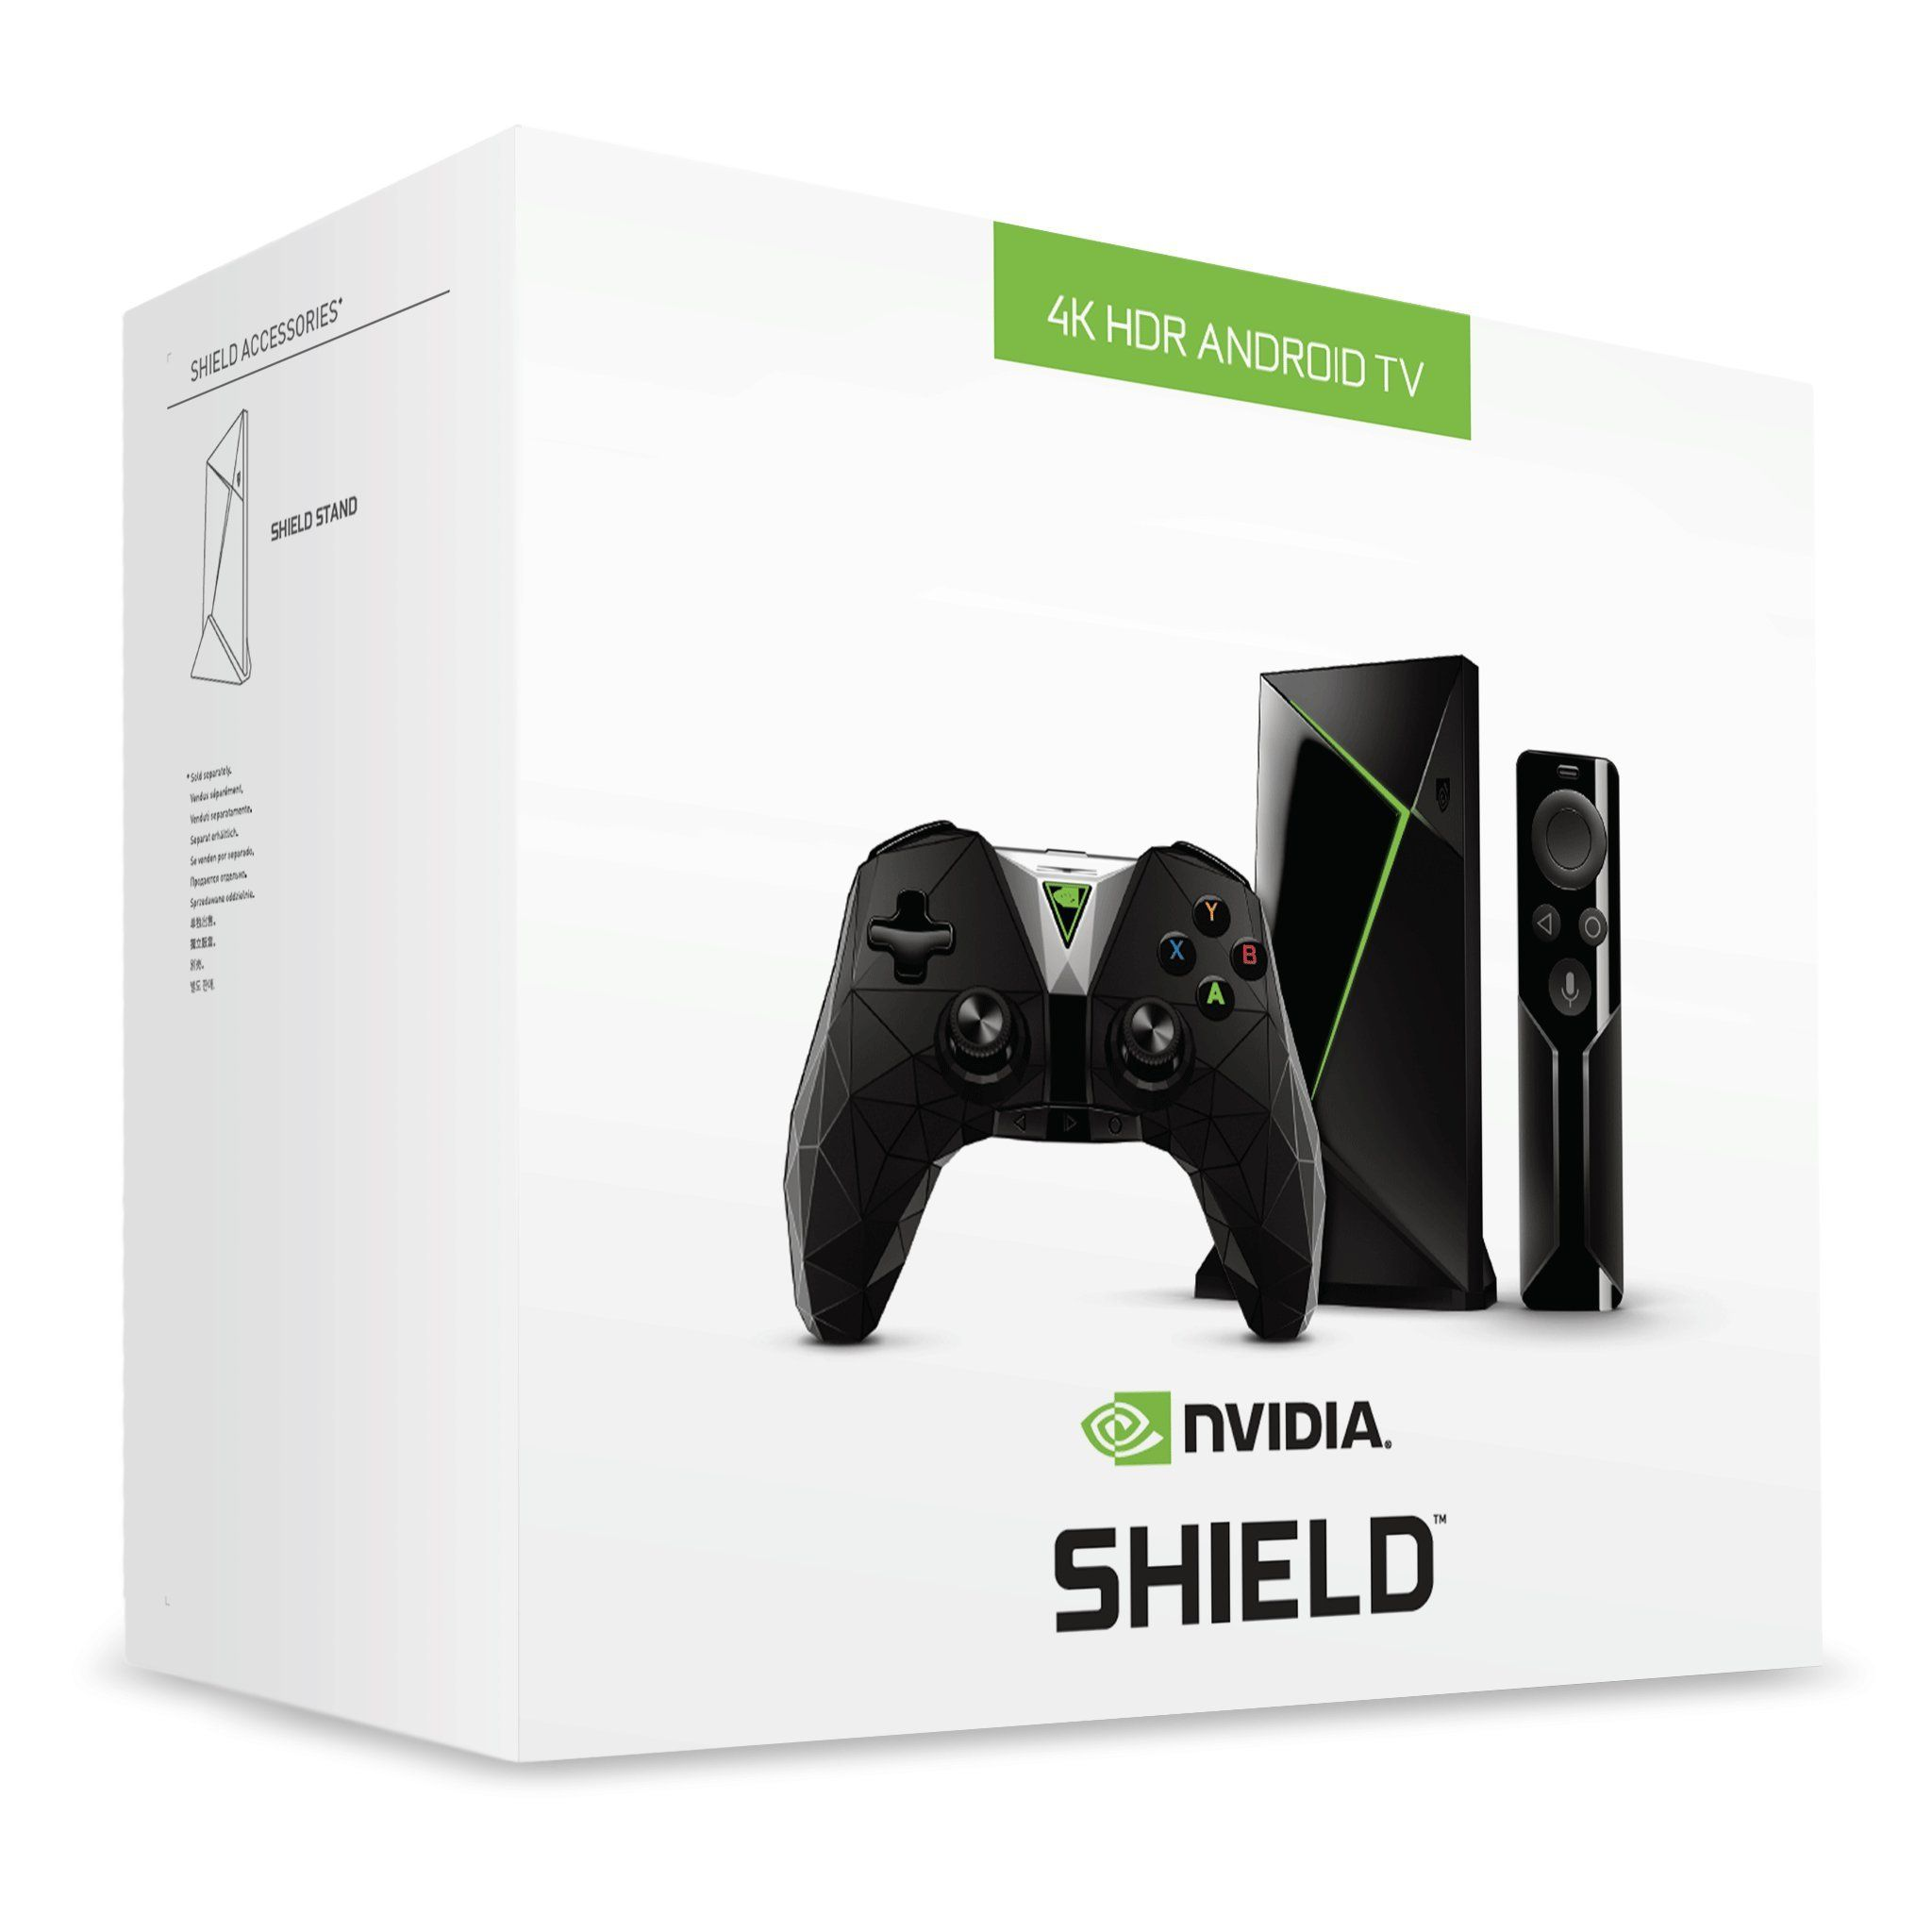 NVIDIA SHIELD TV Gaming Edition4K HDR Streaming Media Player with GeForce NOW